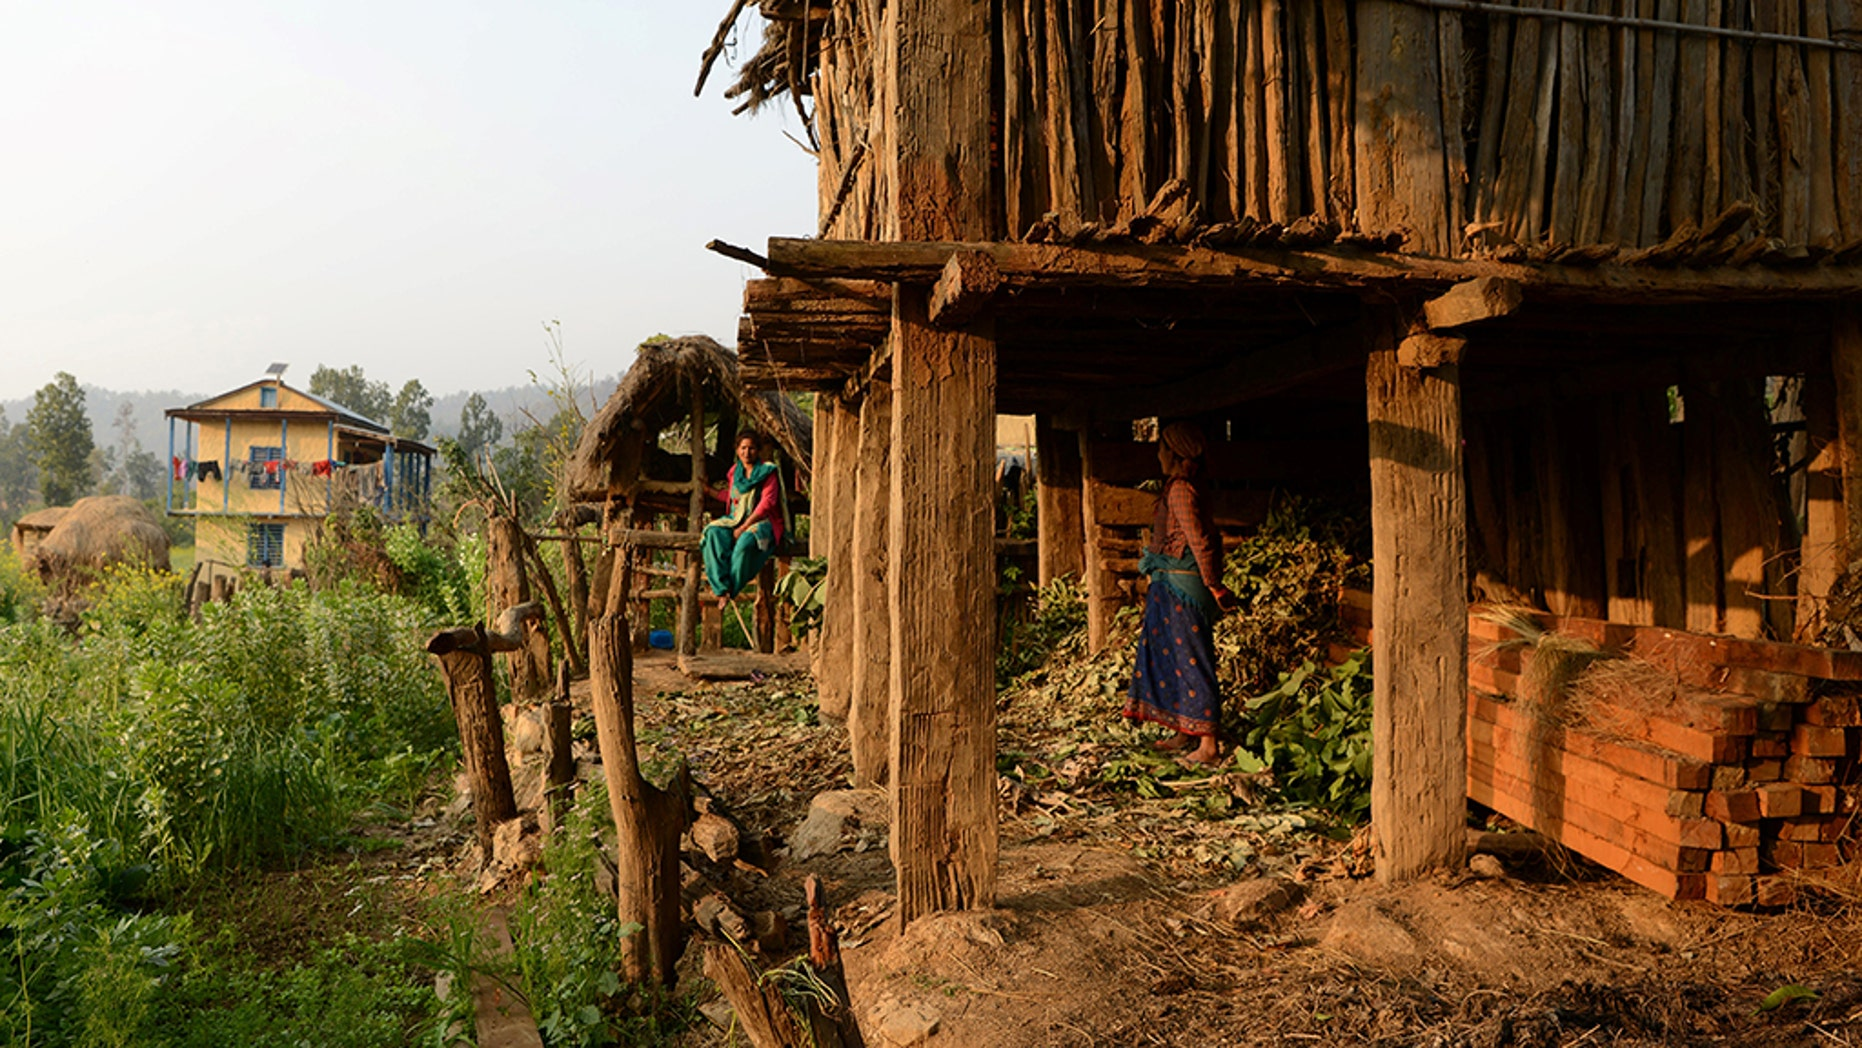 In this photograph taken on February 3, 2017, Nepalese woman Yum Kumari Giri looks at a Chhaupadi hut during her menstruation period in Surkhet District, some 520km west of Kathmandu.